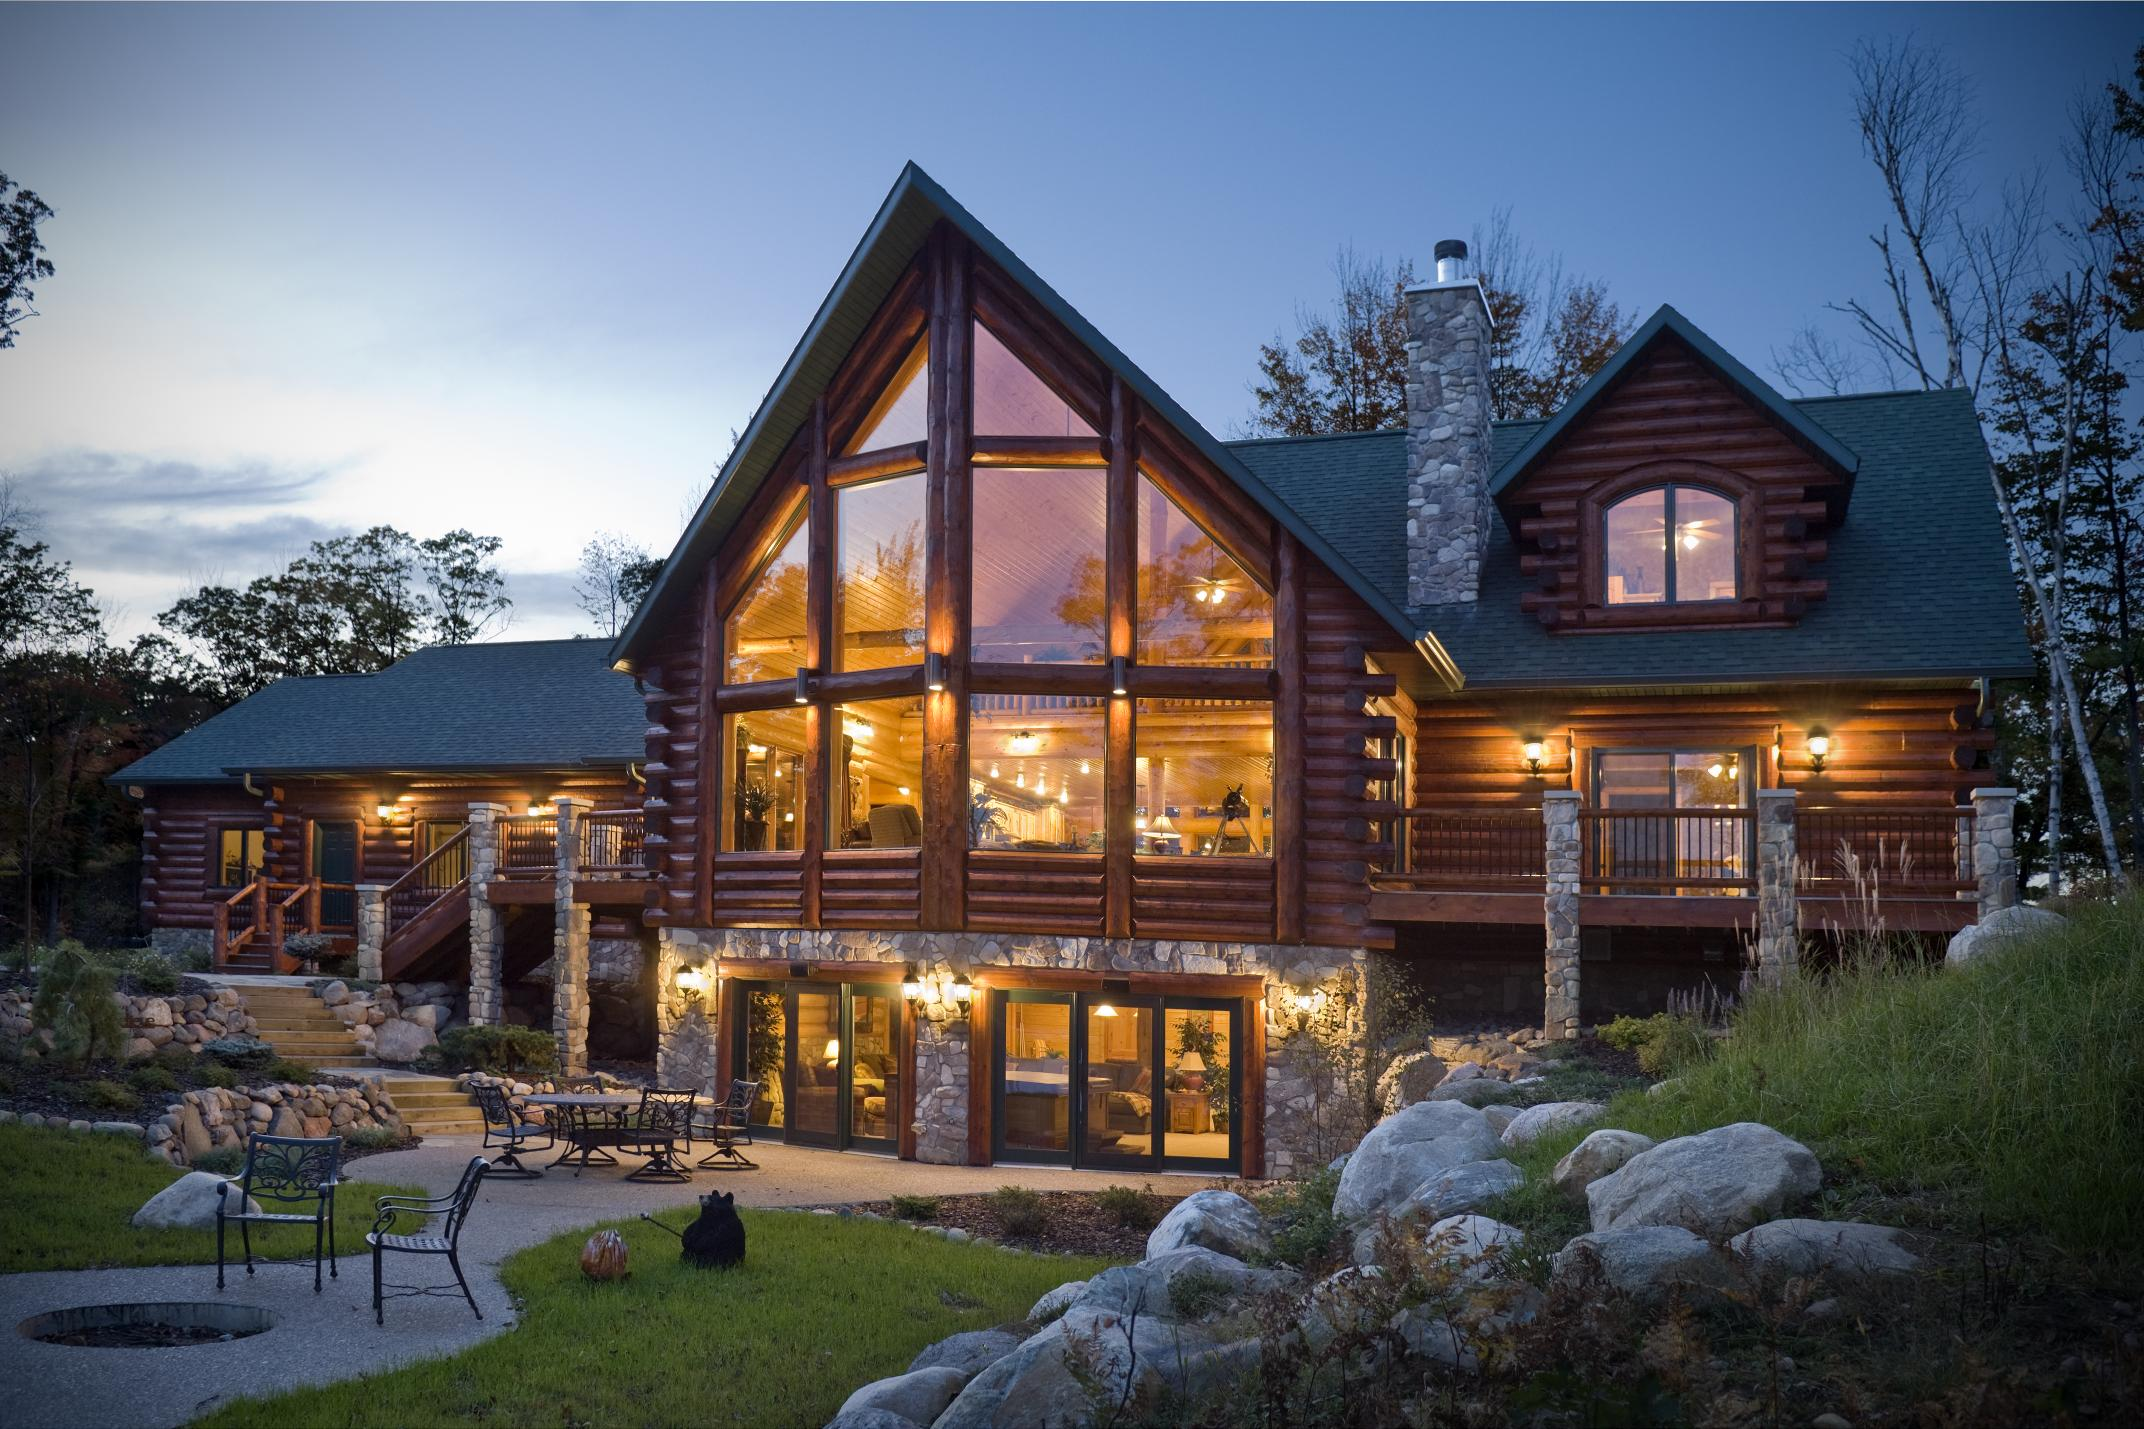 Sashco log home products and golden eagle log homes expand for Large log home plans